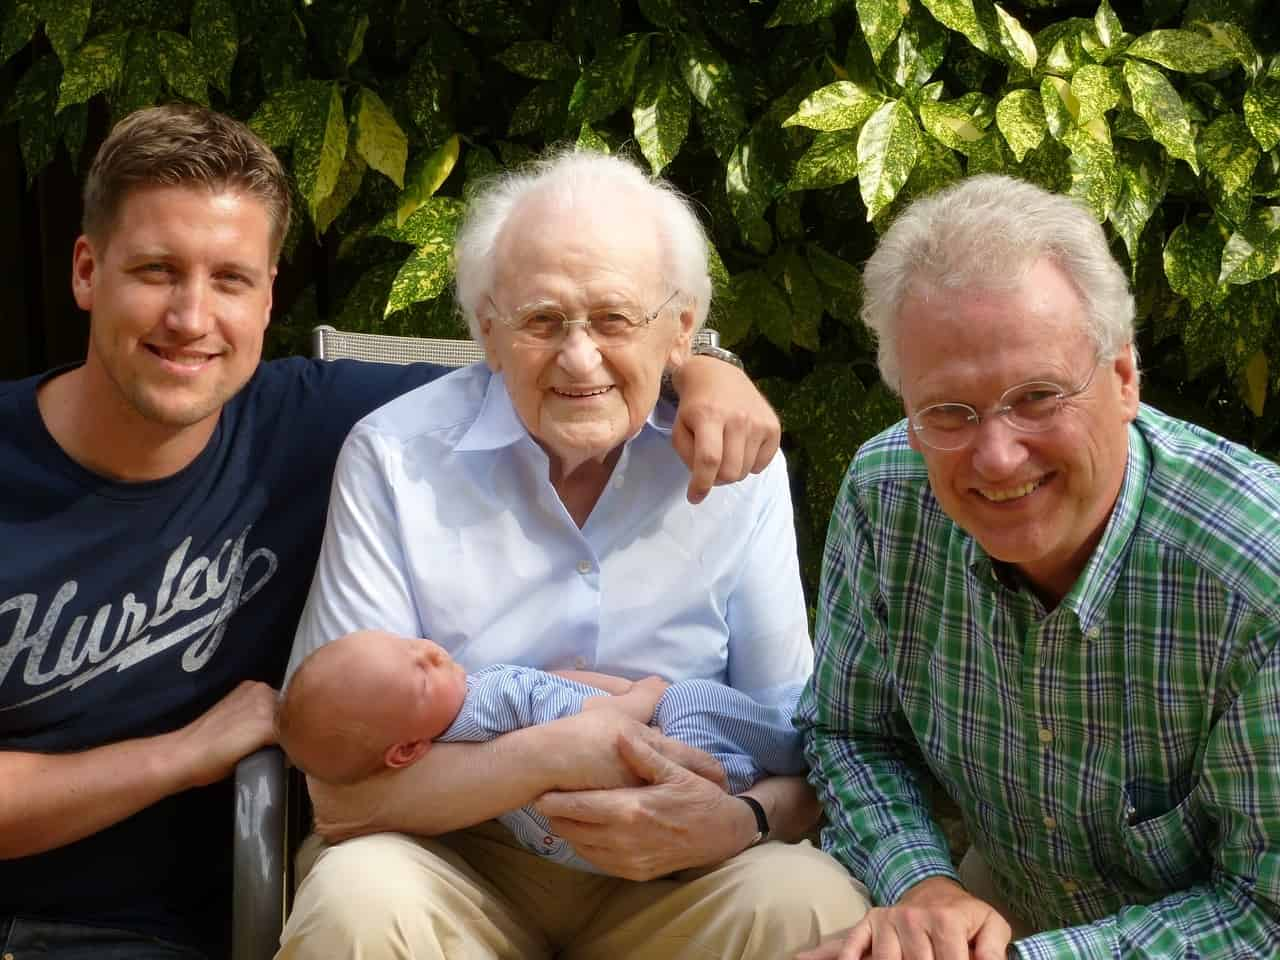 Three men and a baby representing four generations of a family - The perfect mother